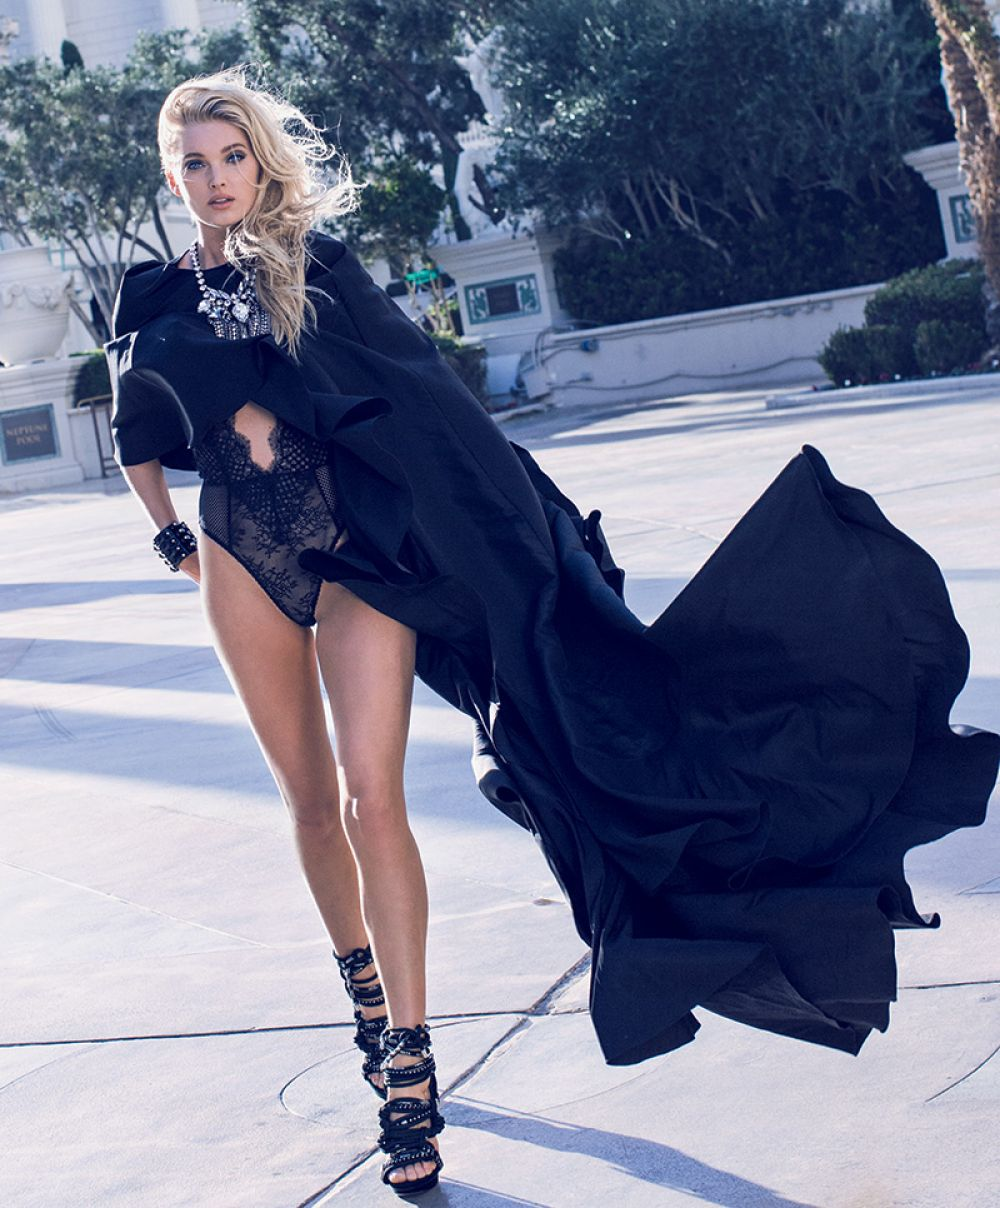 ELSA HOSK in Maxim Magazine, February 2016 Issue